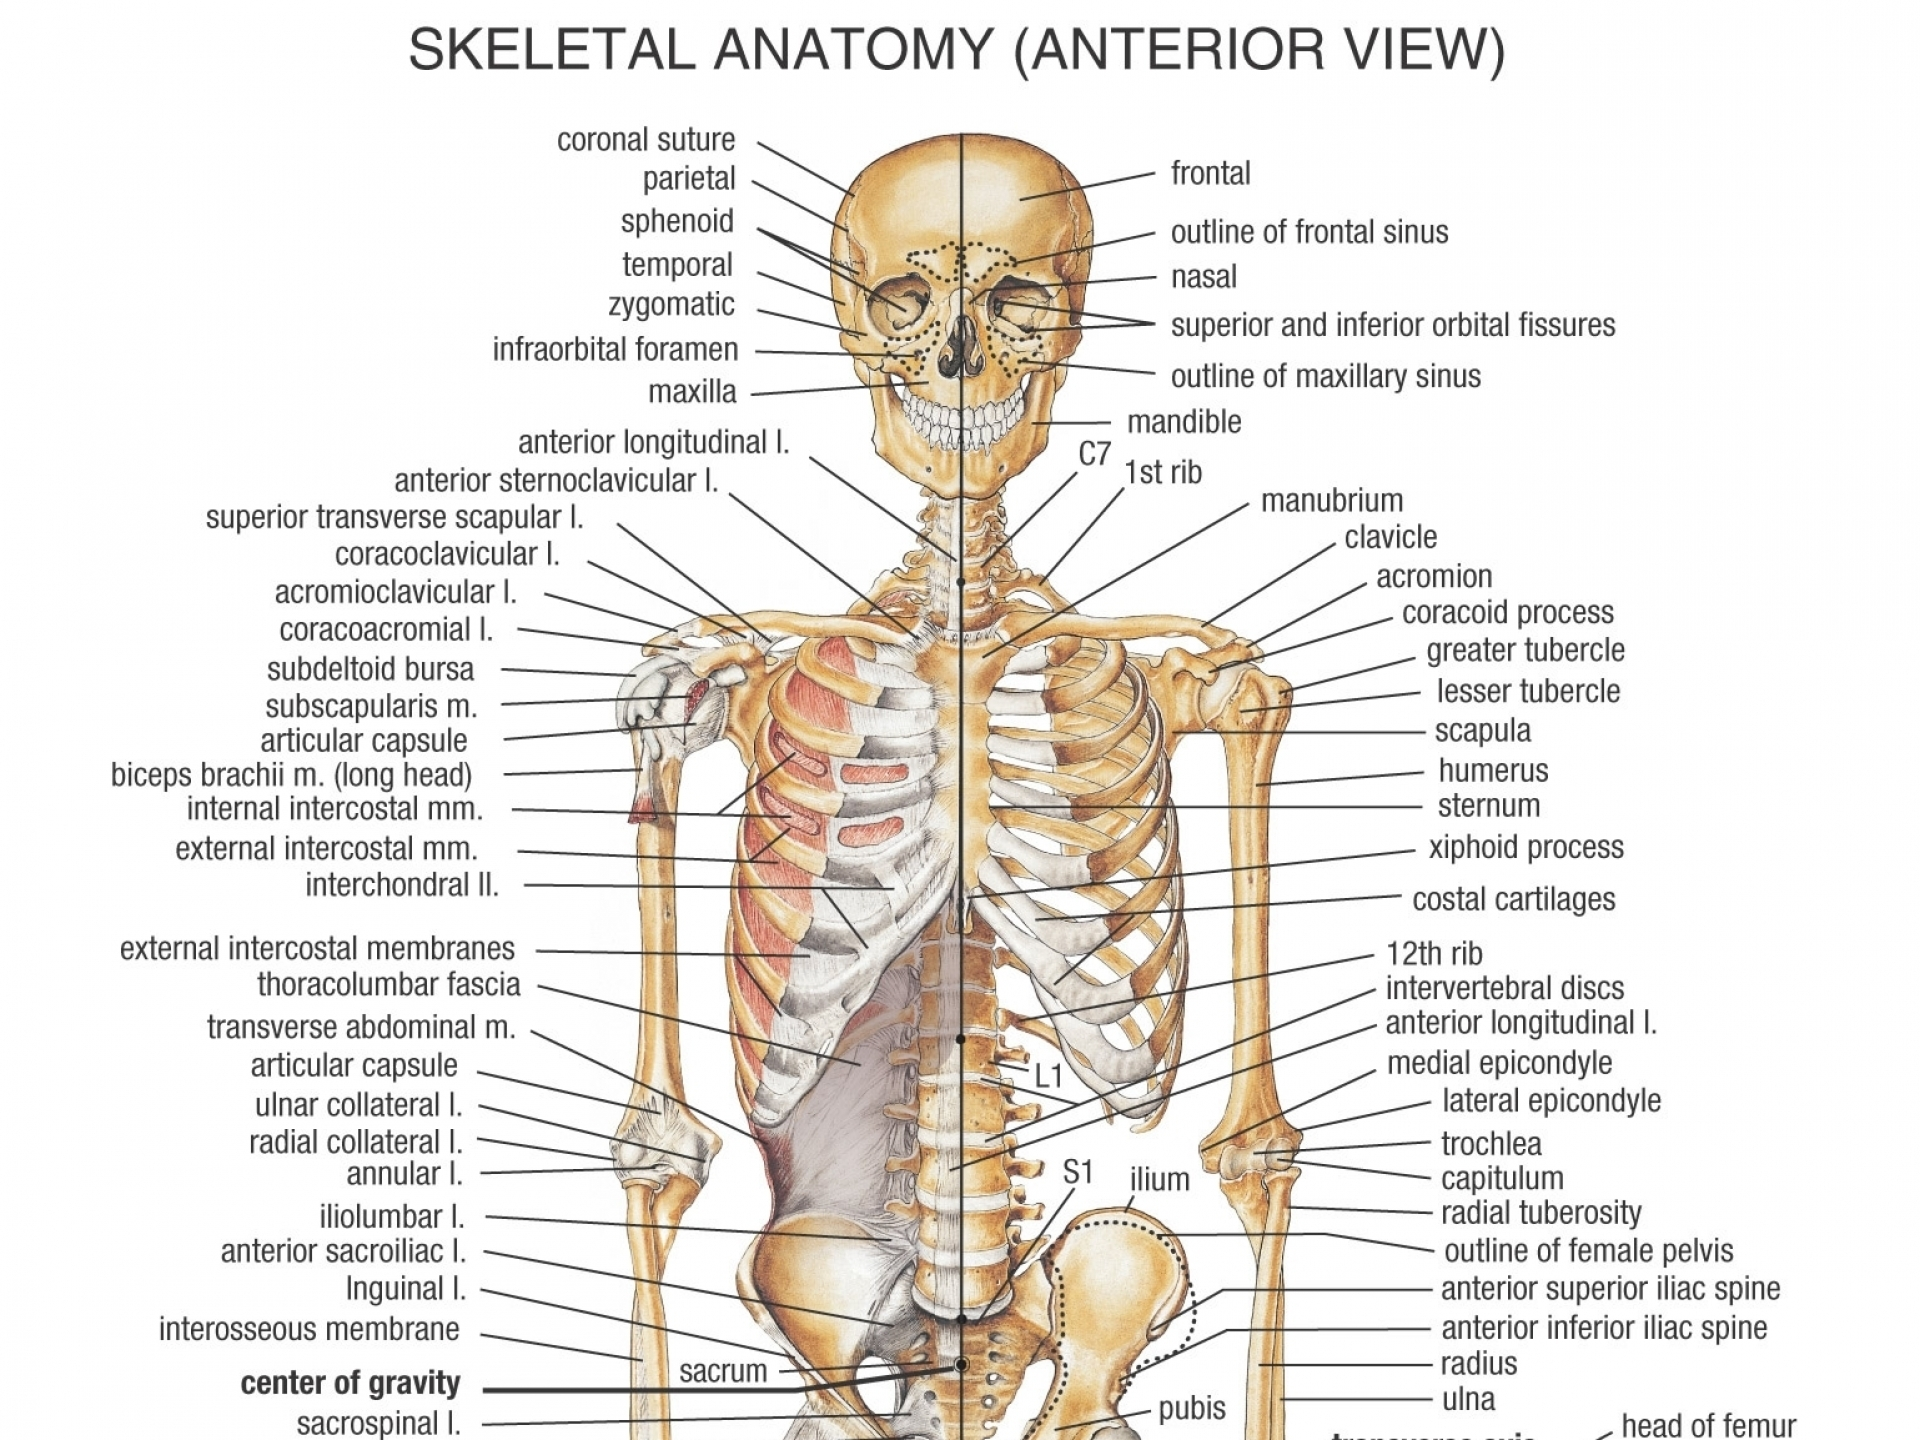 Die Skelettsystem-Anatomie | Health Life Media